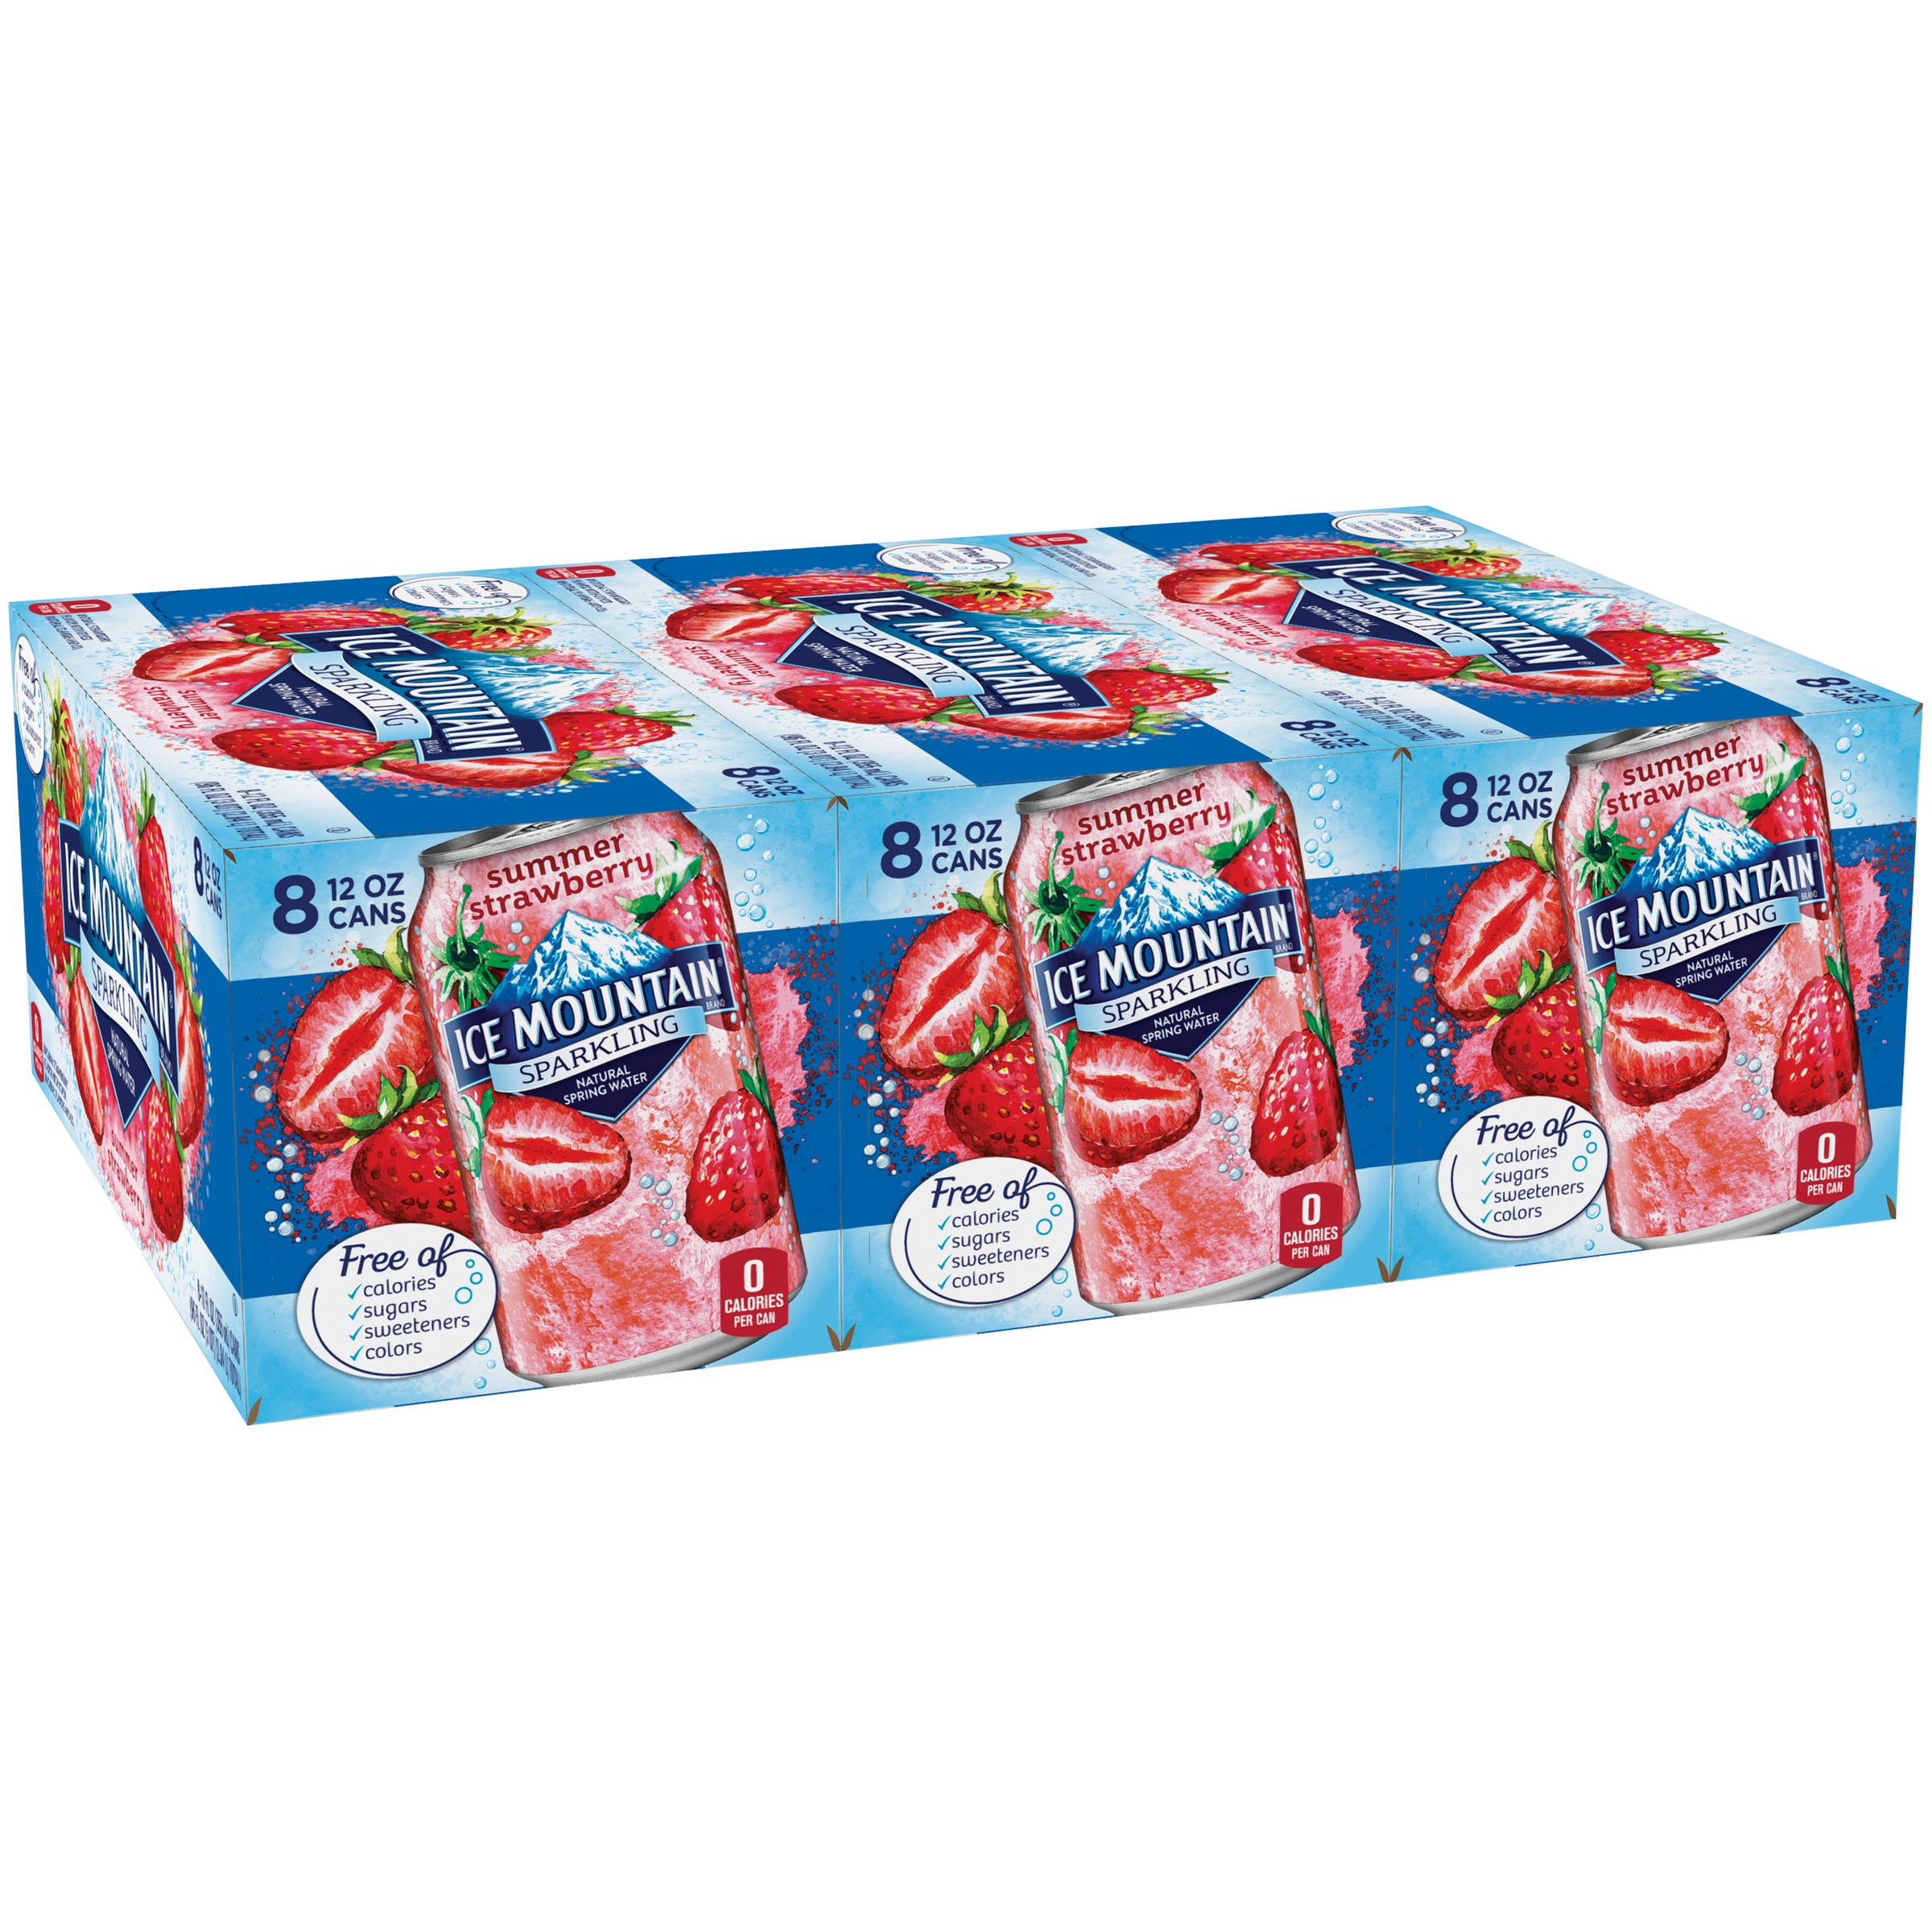 Ice Mountain Sparkling Water, Summer Strawberry, 12 oz. Cans (Pack of 24)